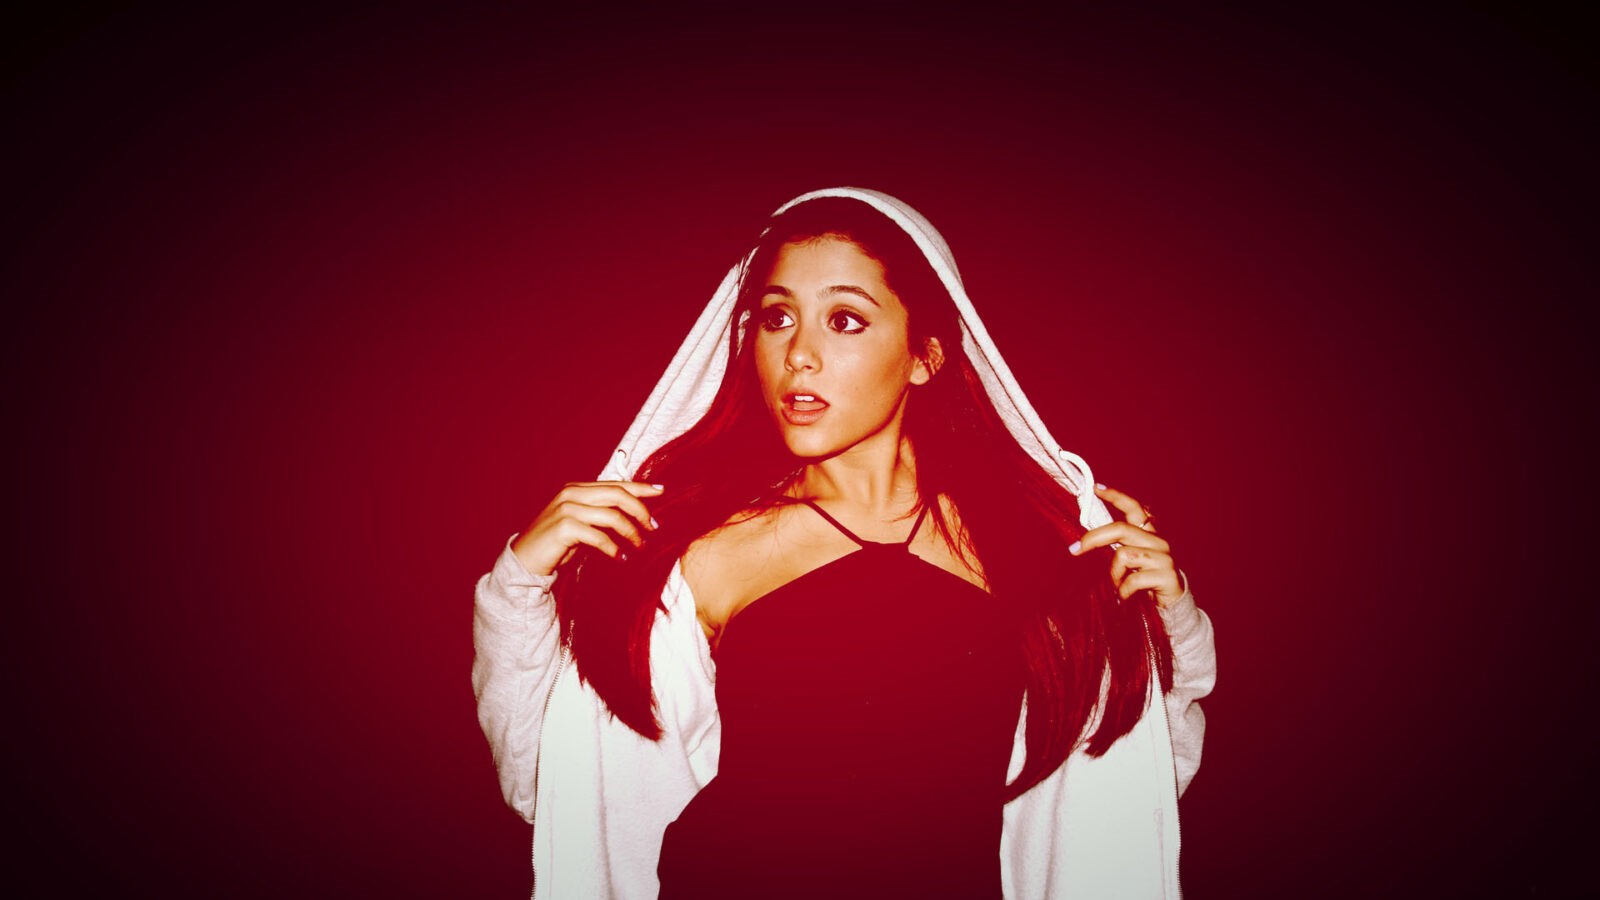 35+ Ariana Grande wallpapers HD - 118.0KB